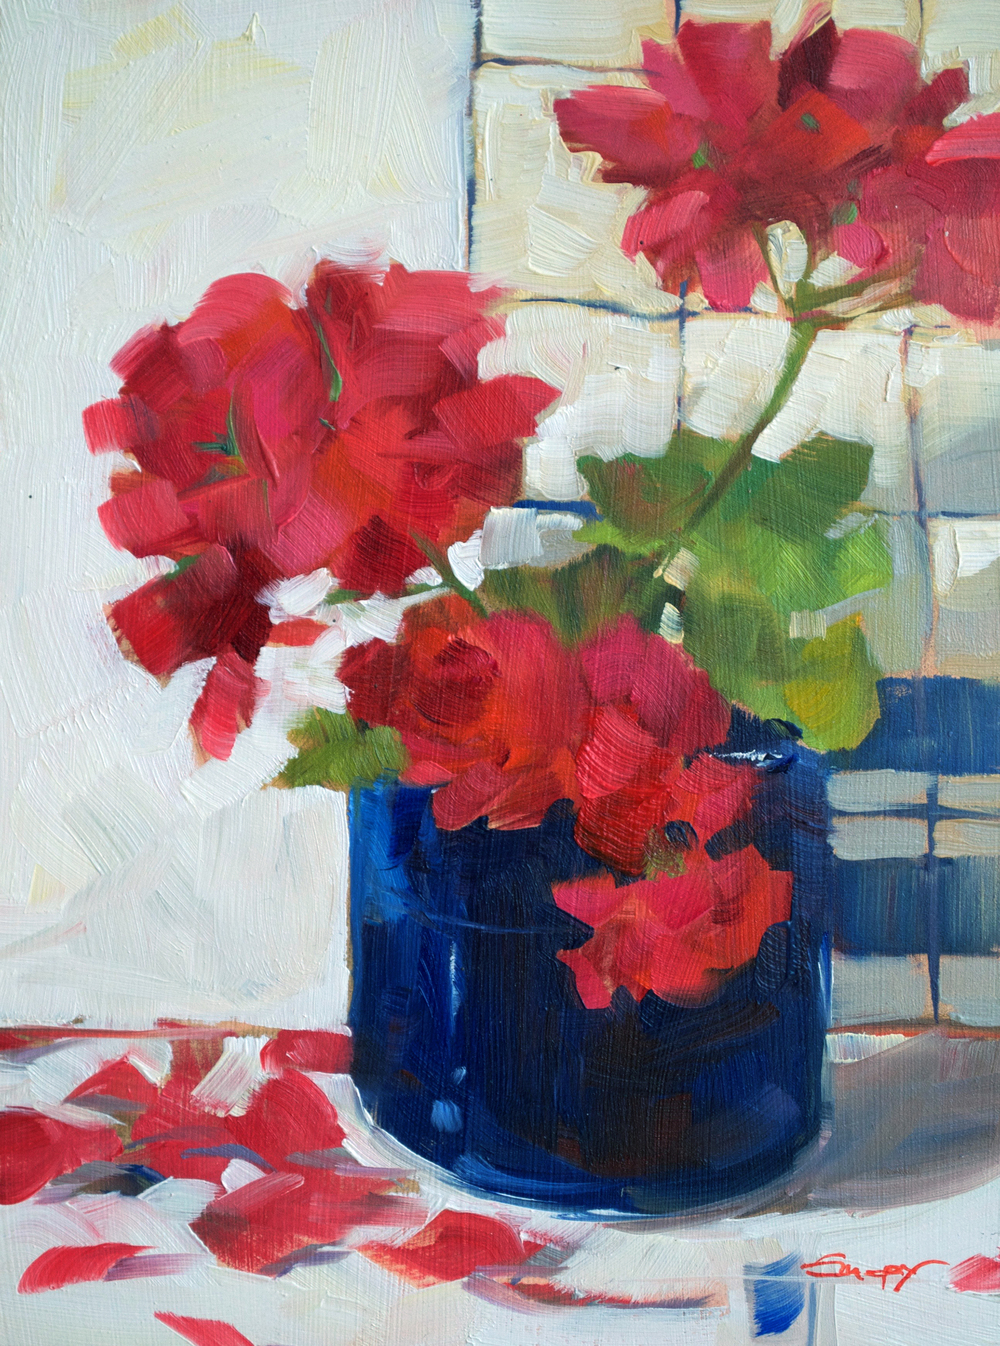 Red Geranium with Blue Vase